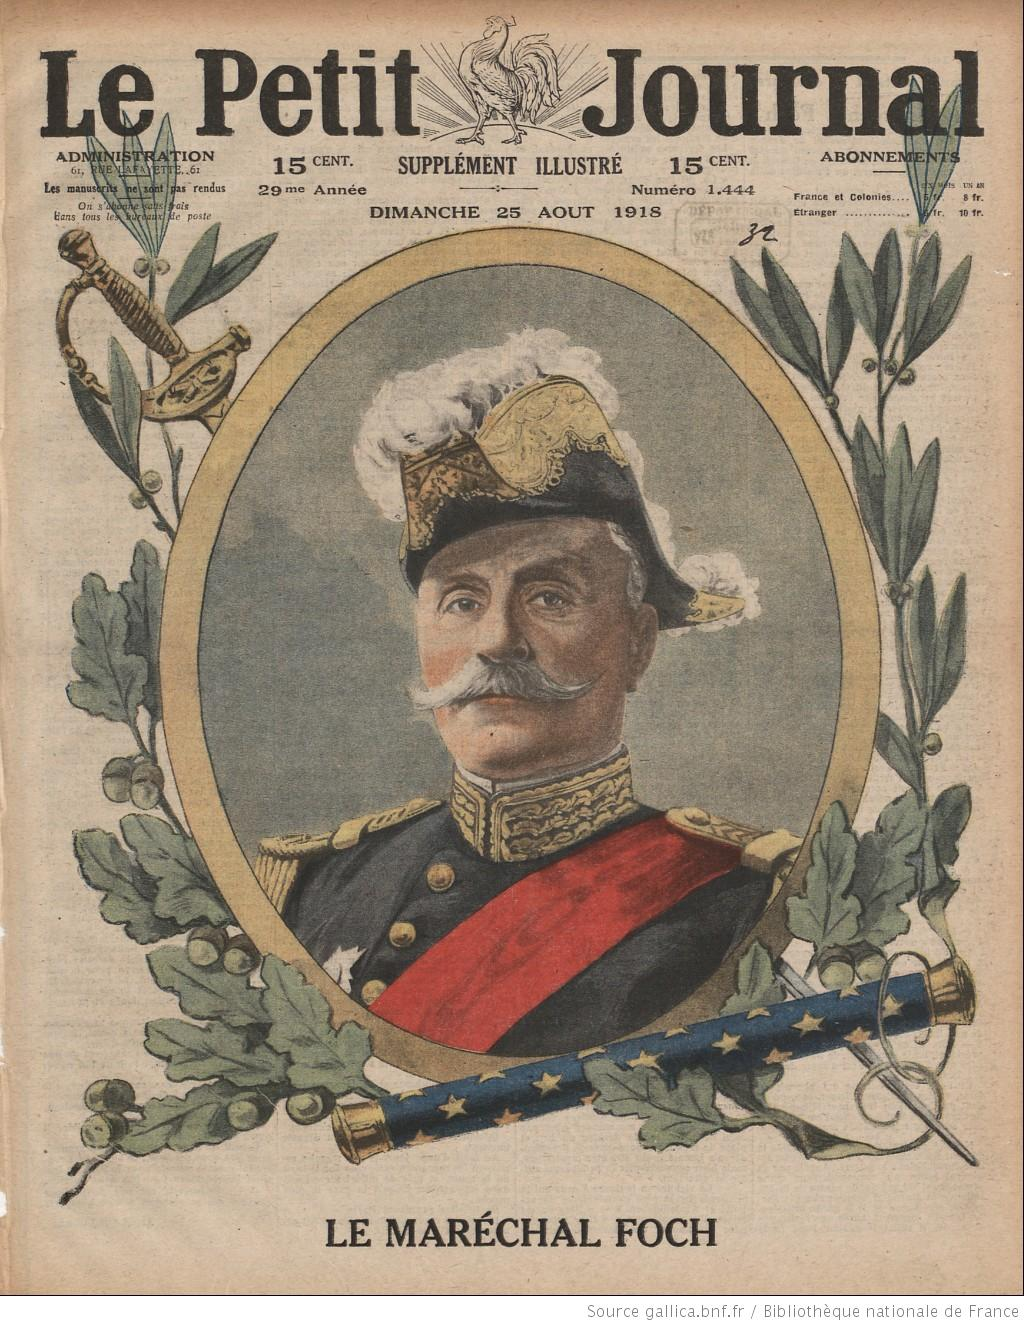 LPJ Illustre 1918-08-25 A.jpg